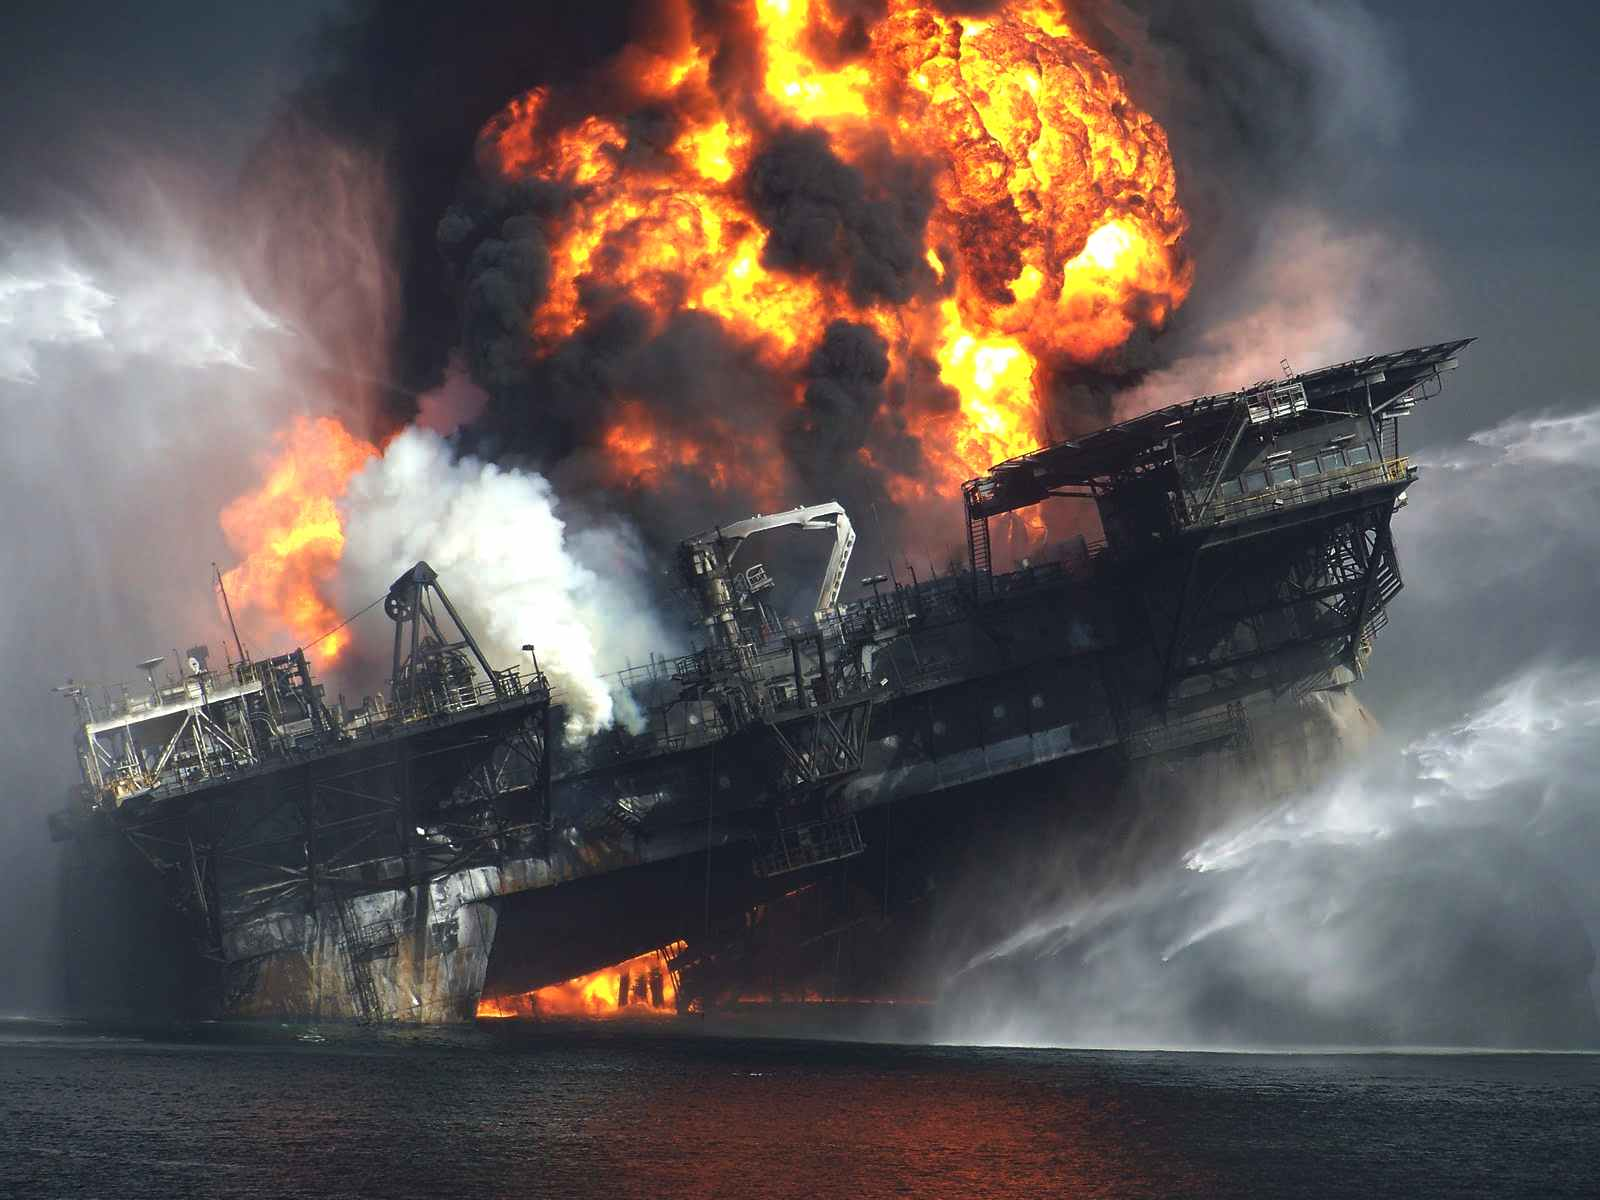 BP Deepwater Horizon oil rig collapsing ablaze